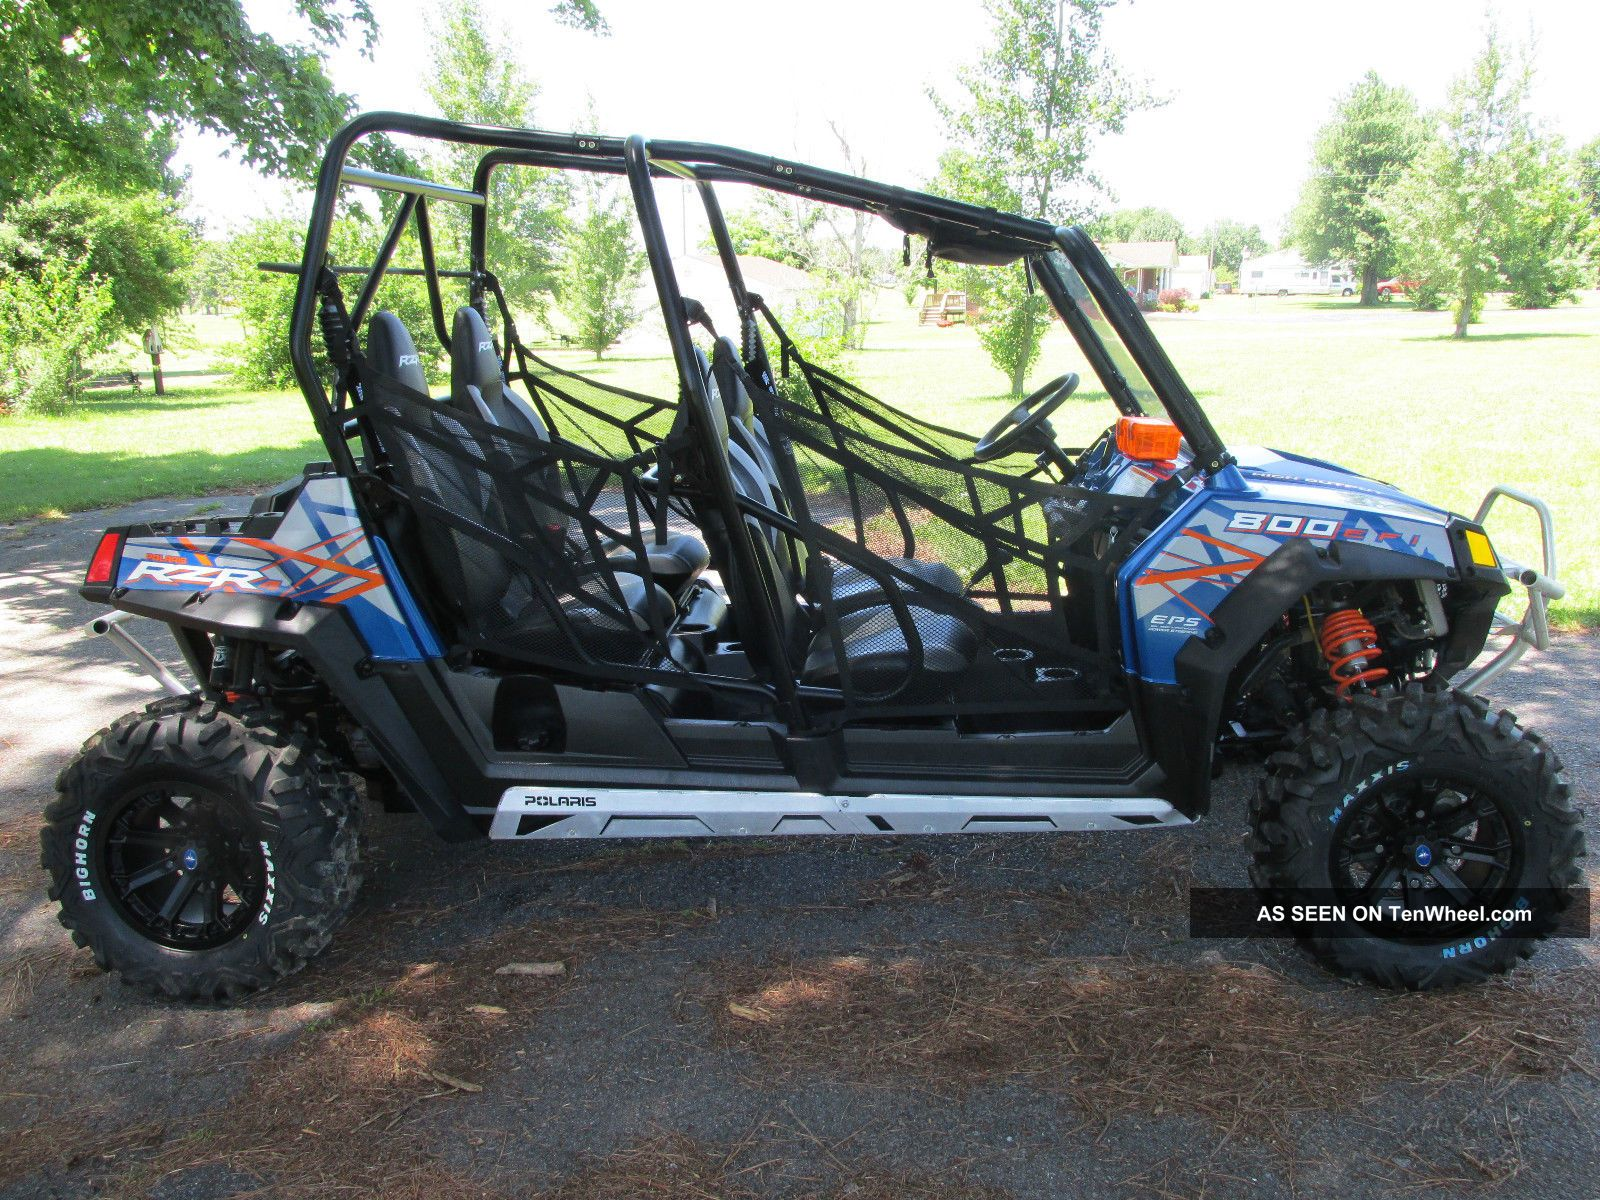 2013 Polaris Rzr S Polaris photo